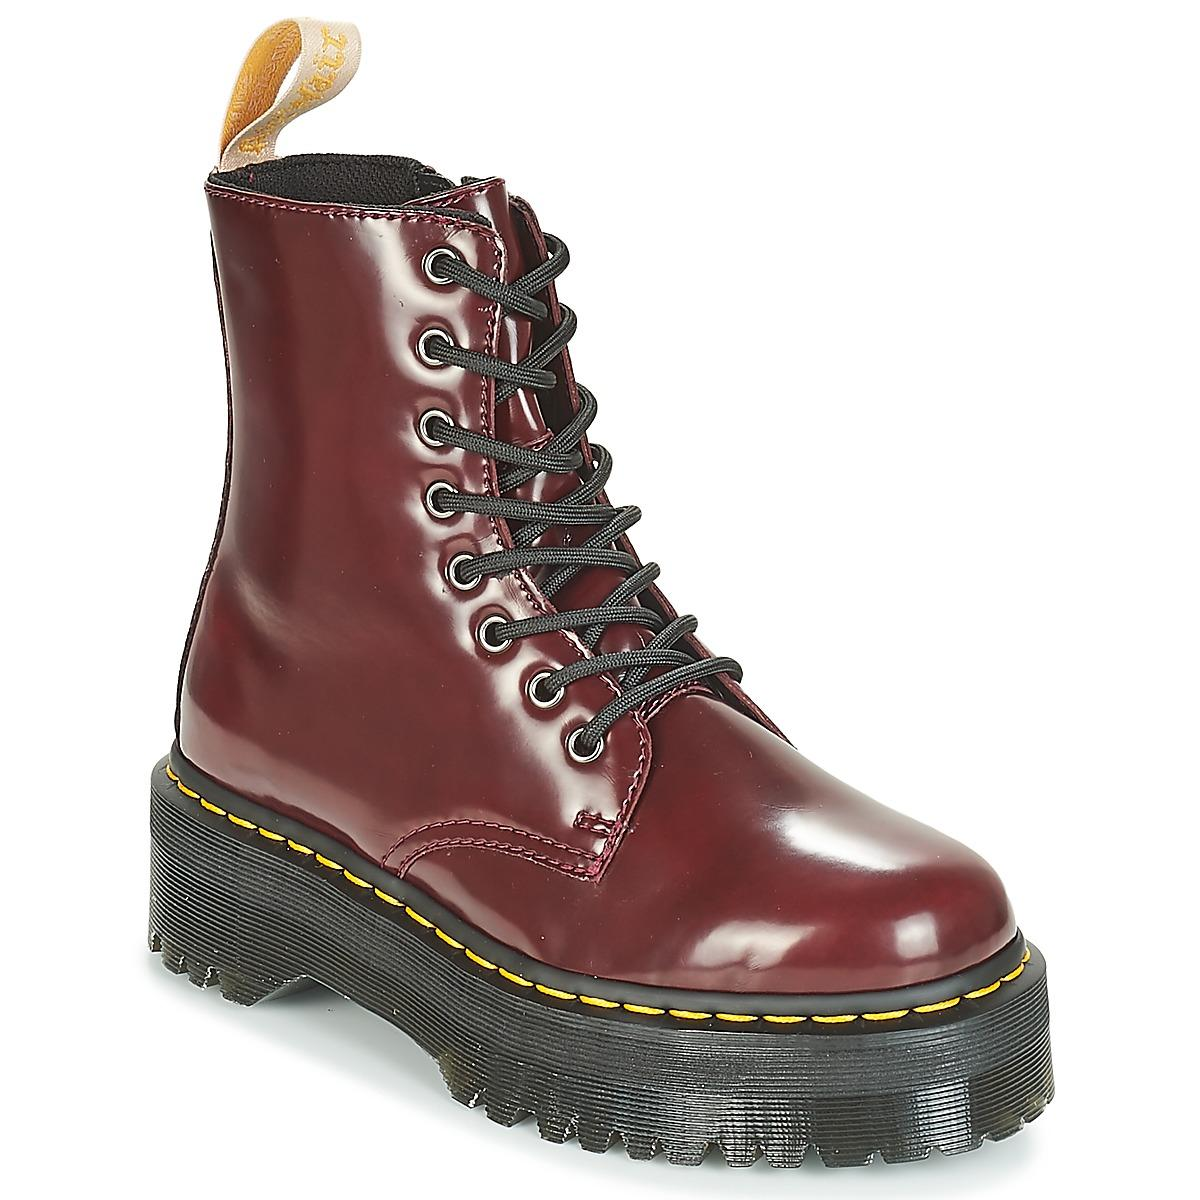 6df2aaf814ff Dr. Martens Jadon Mid Boots in Red - Lyst